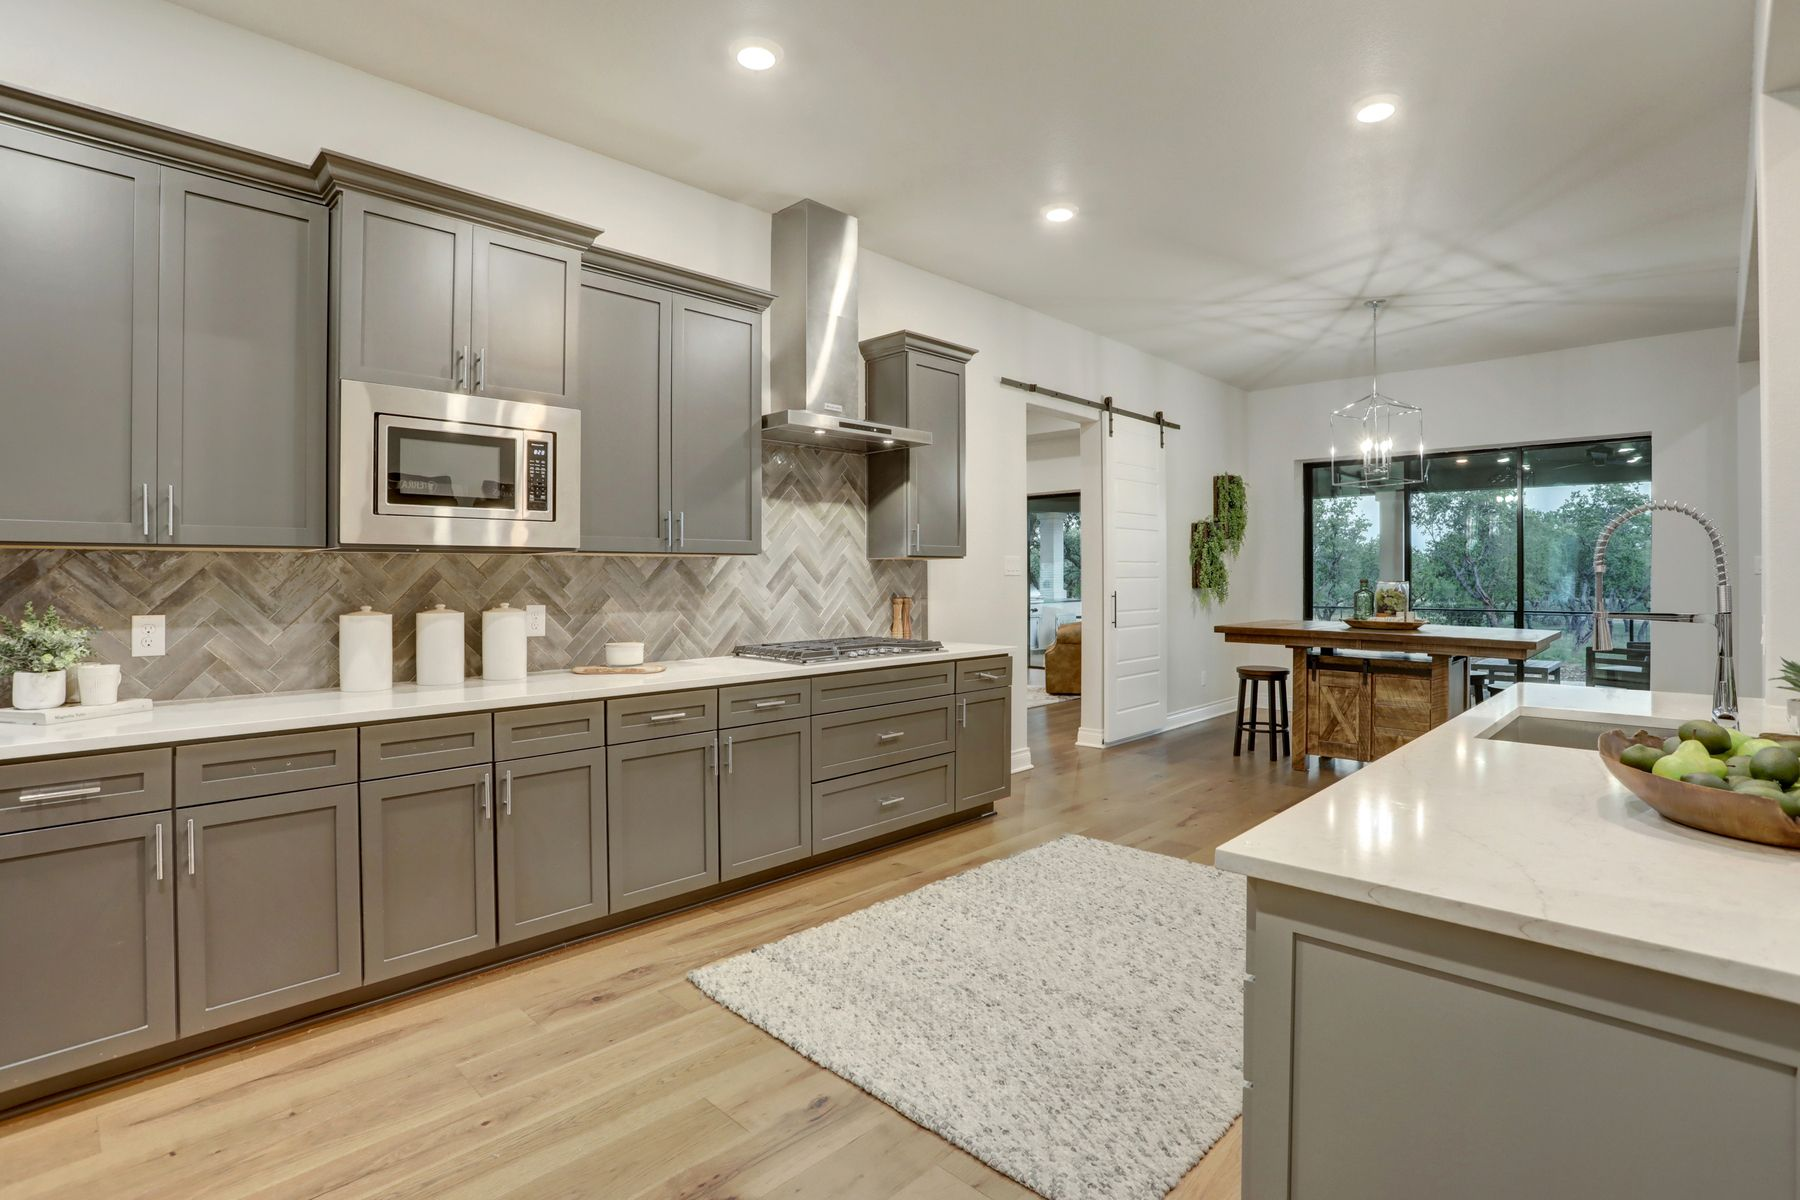 The Stratton by Terrata Homes:The kitchen comes with beautiful wood cabinetry and stainless steel appliances.